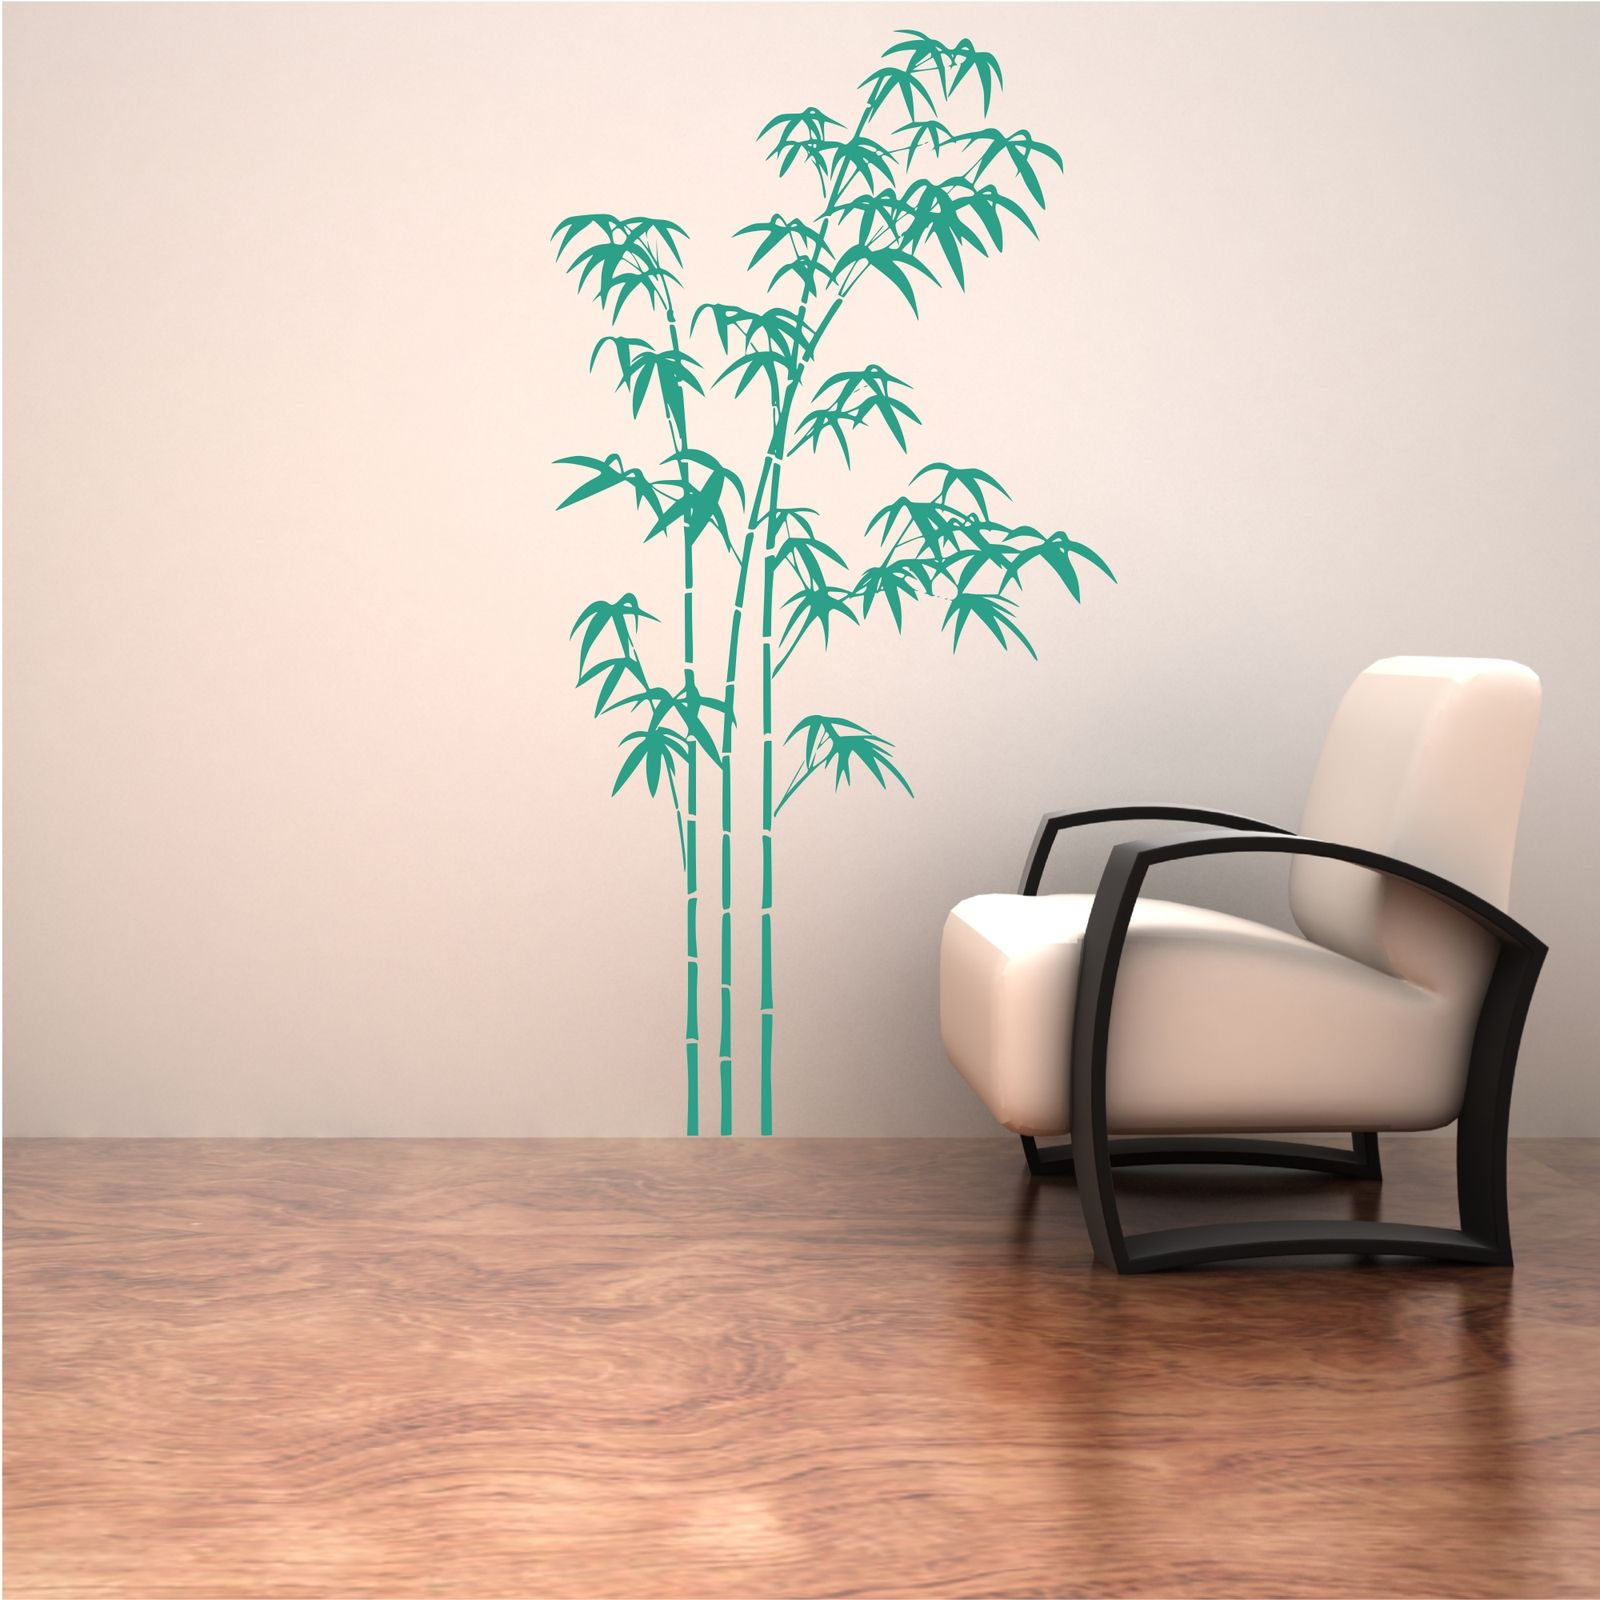 Bamboo tree grass wild jungle wall sticker decal mural stencil ...